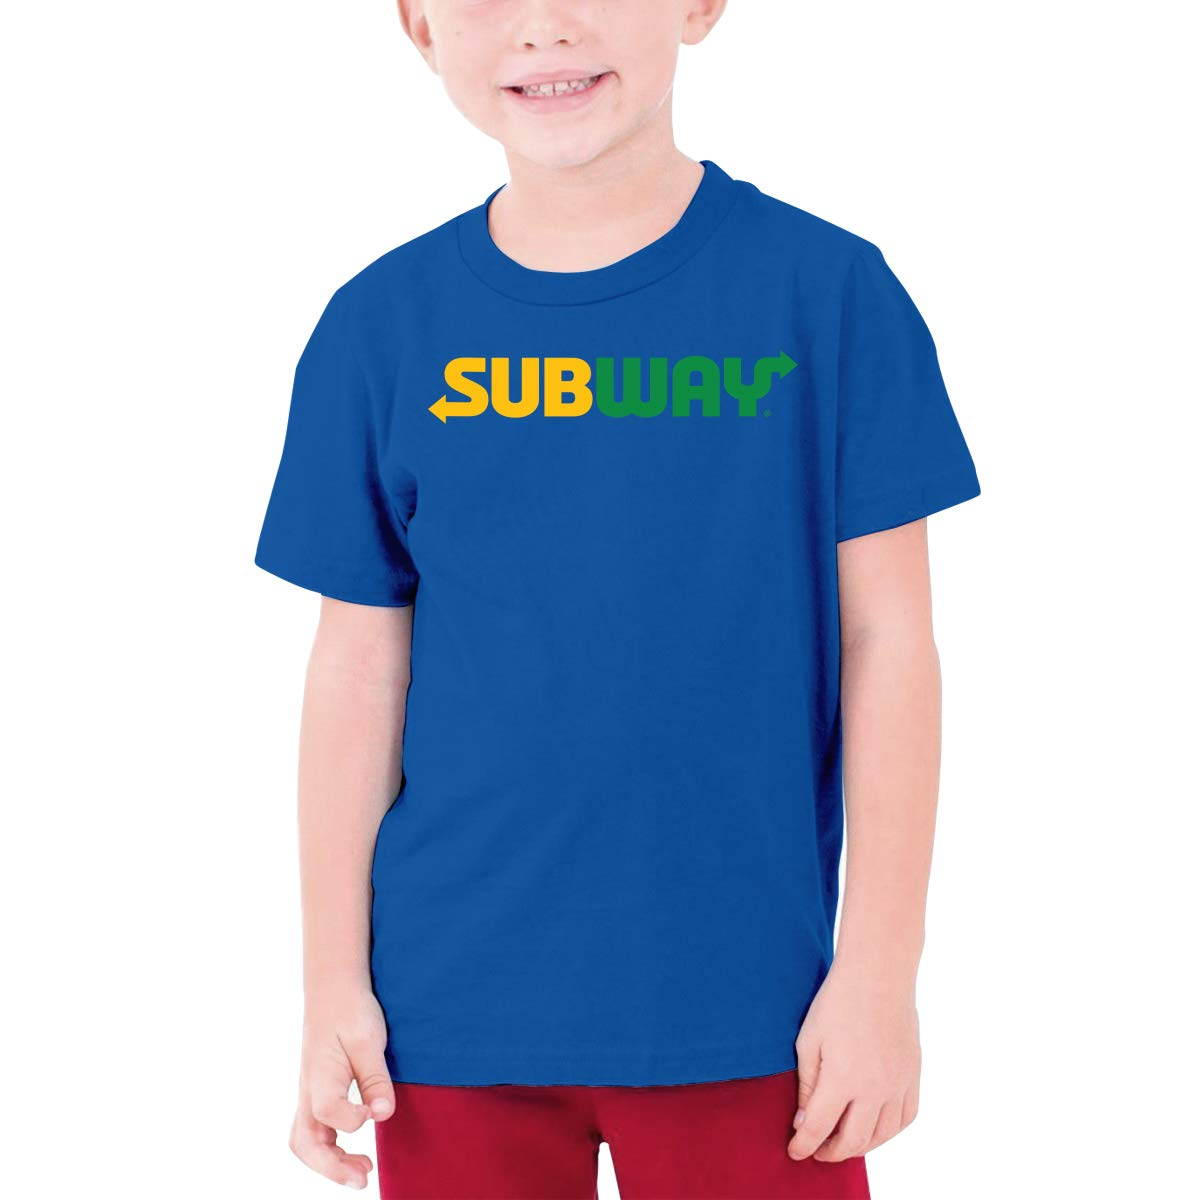 LOUHART Custom Subway Trademark Funny Tshirts Short Sleeve for Youngster Blue L